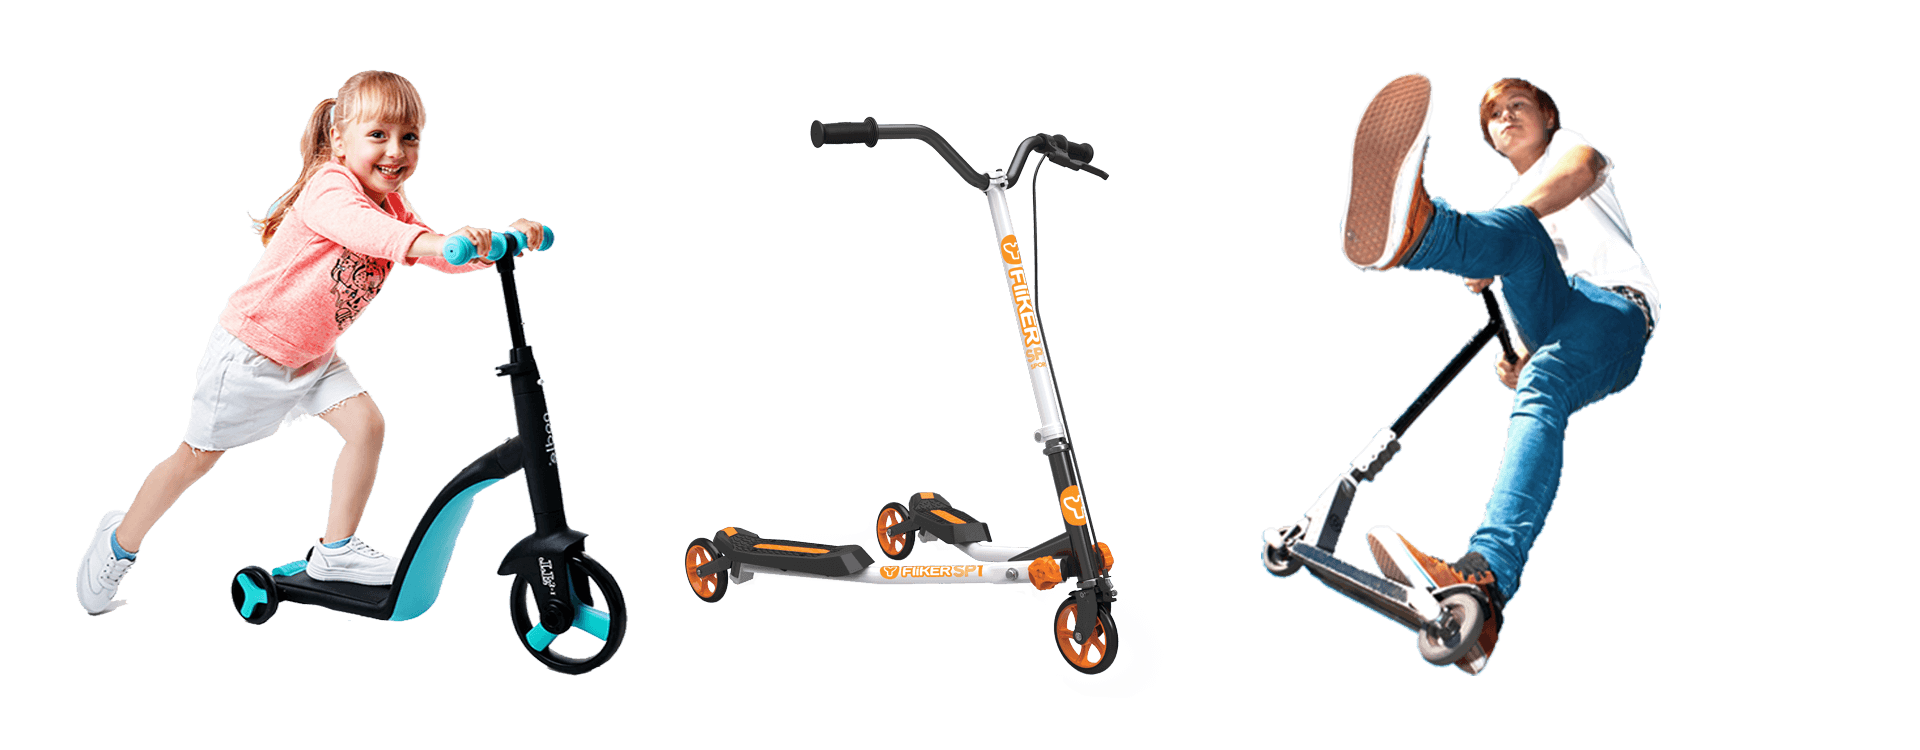 7 Best Scooters for Kids in 2020 (Guide & Reviews)